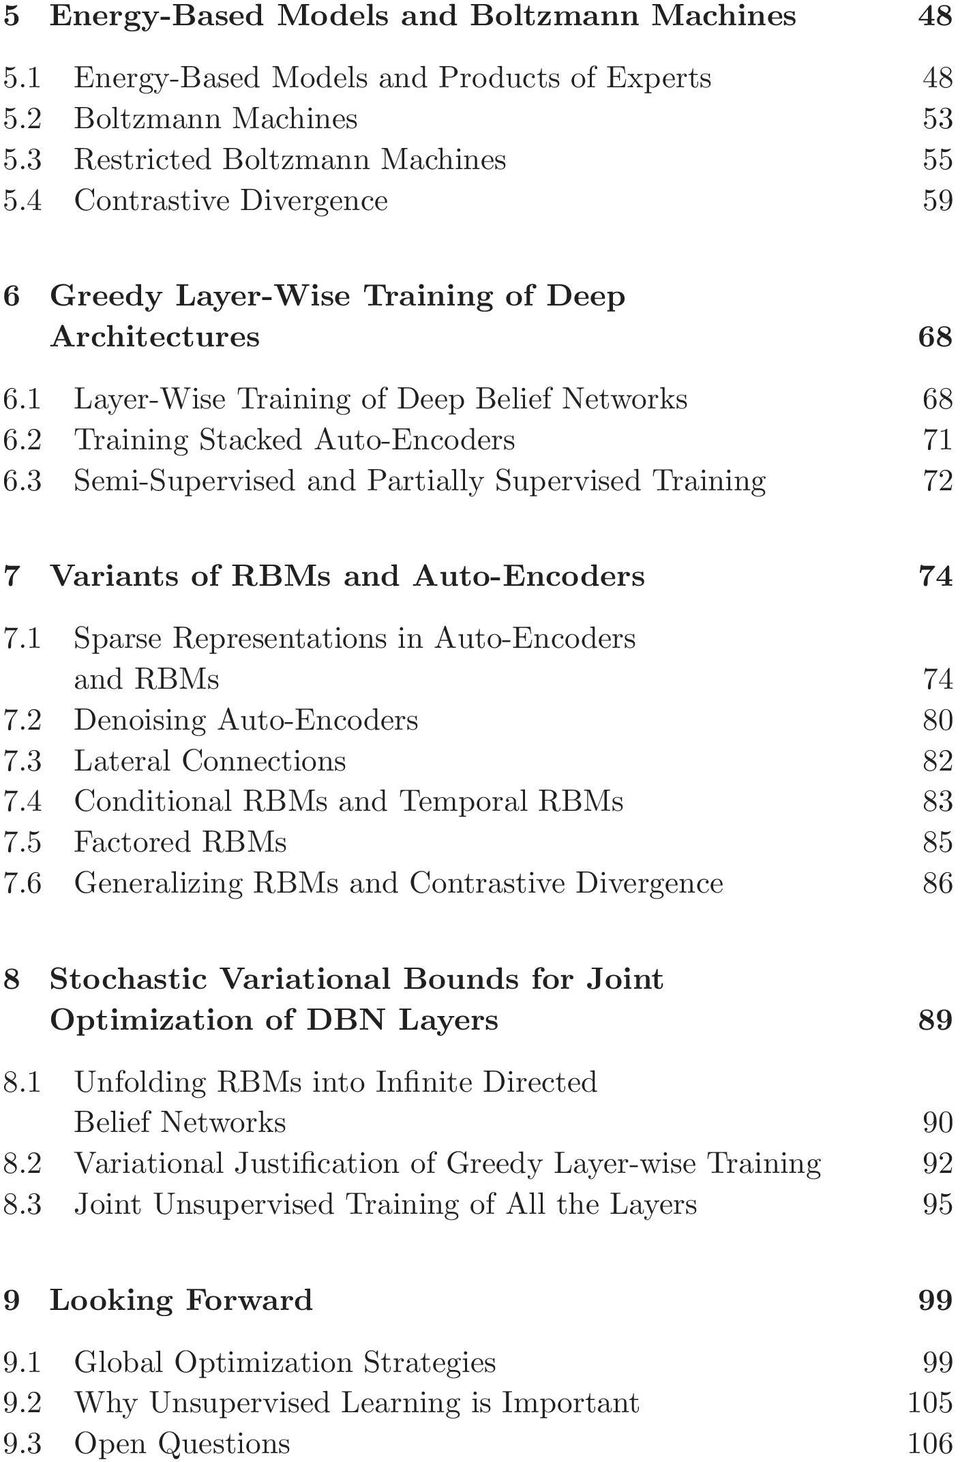 3 Semi-Supervised and Partially Supervised Training 72 7 Variants of RBMs and Auto-Encoders 74 7.1 Sparse Representations in Auto-Encoders and RBMs 74 7.2 Denoising Auto-Encoders 80 7.